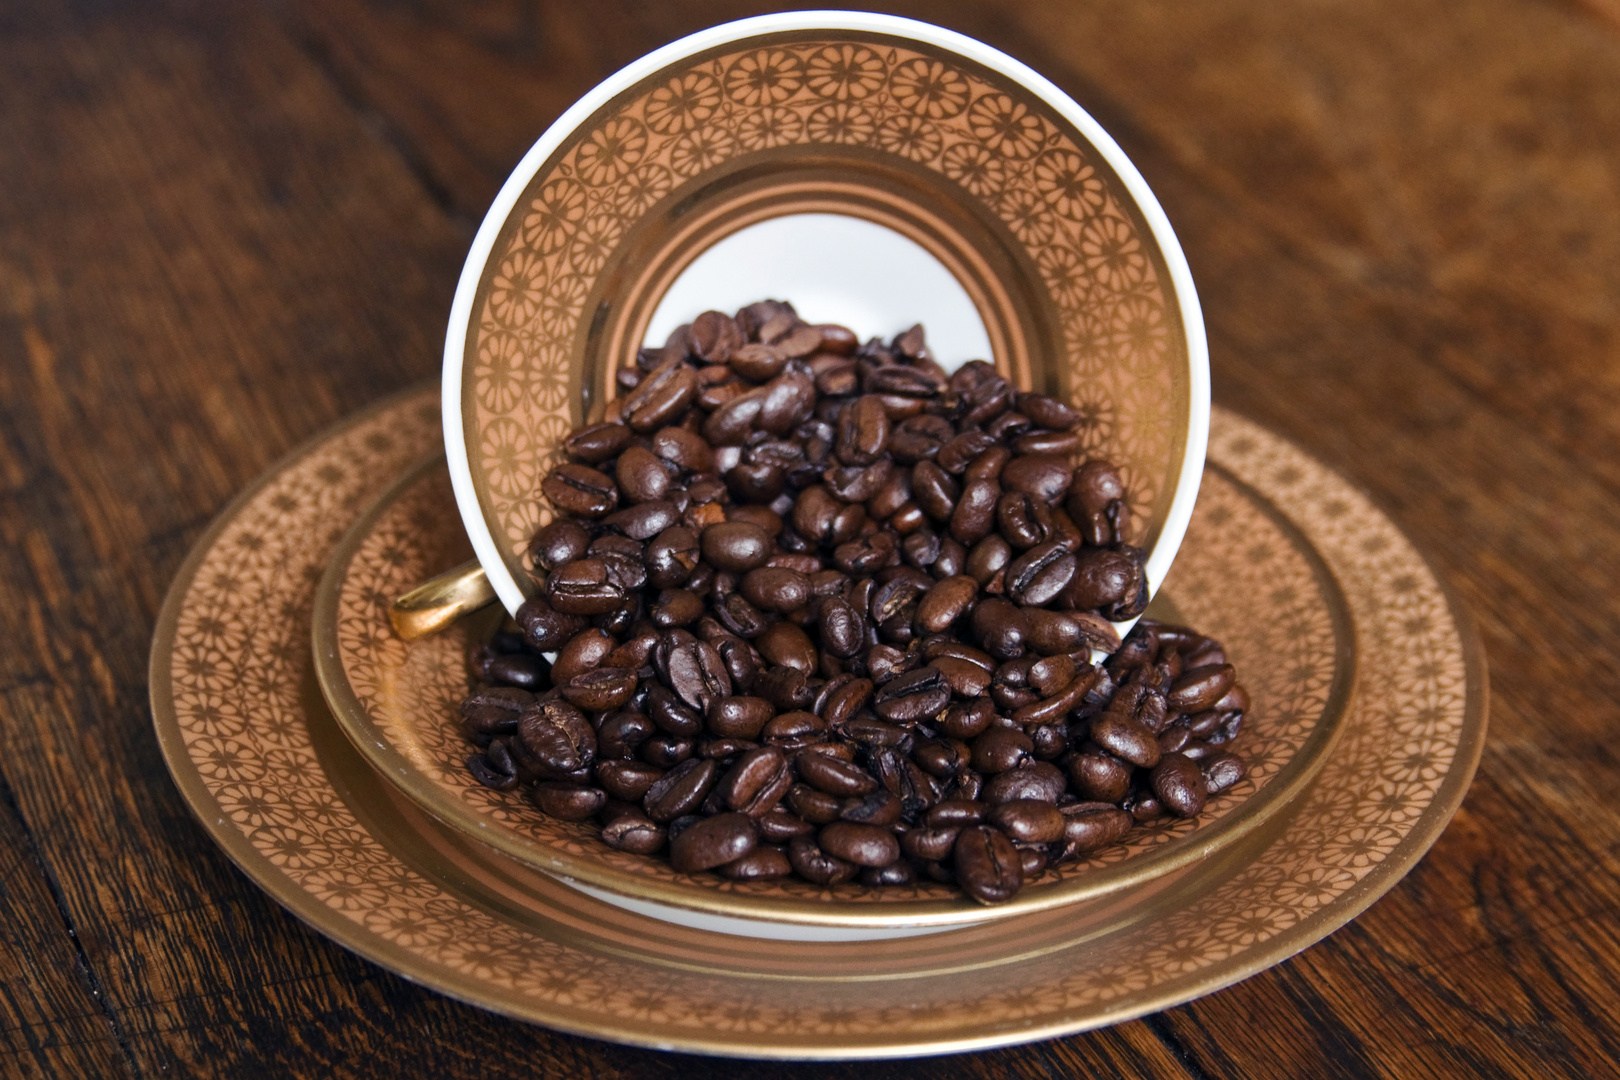 ABSOLUTE COFFEE BEANS